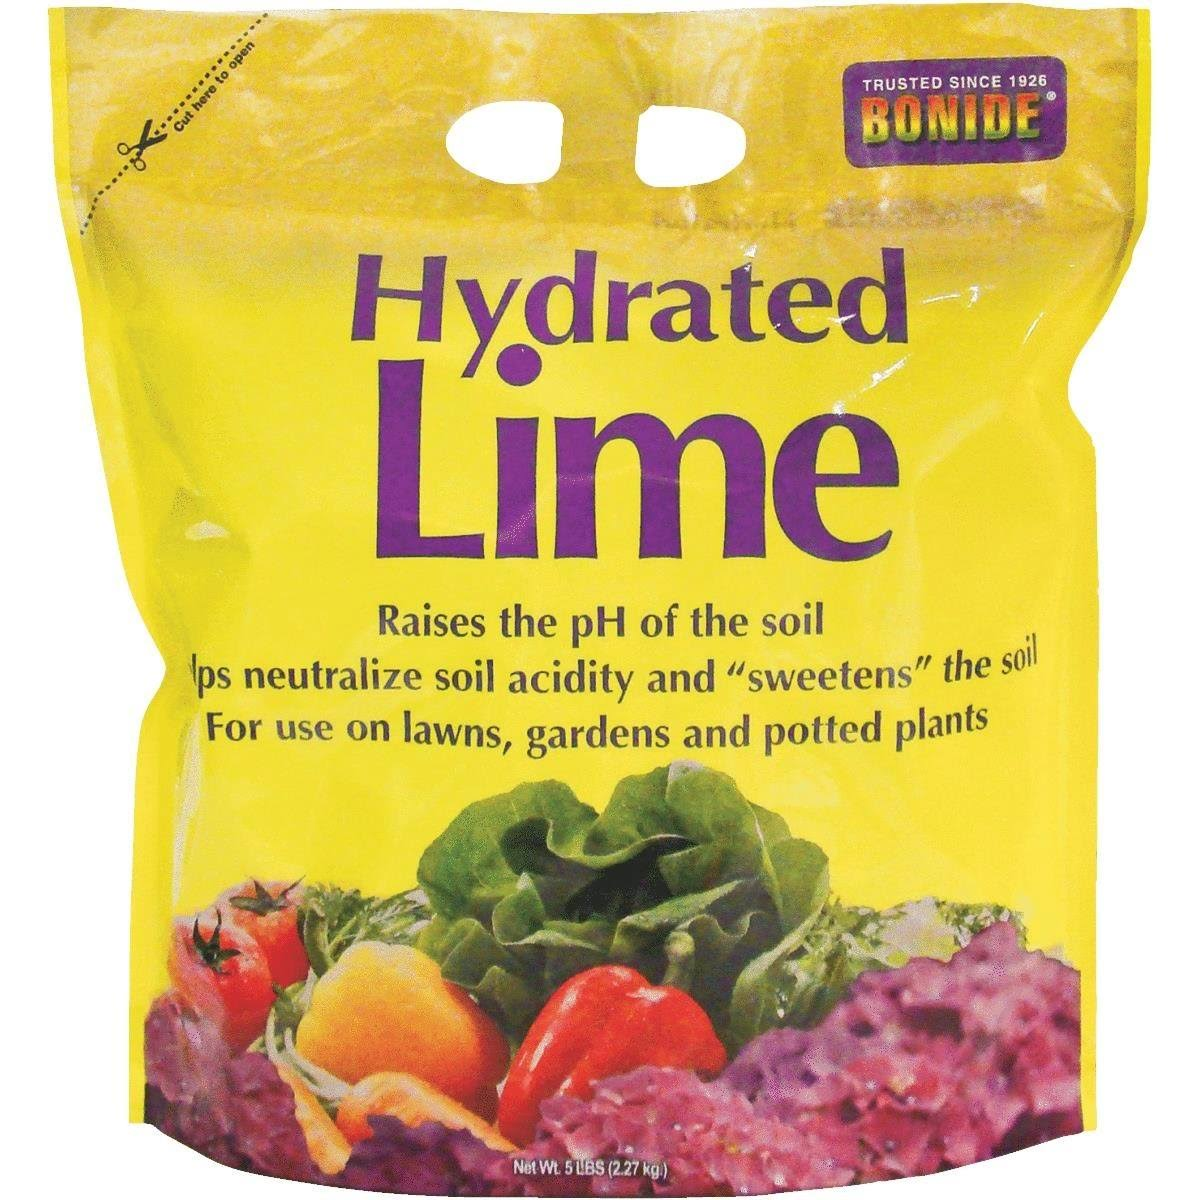 Bonide Chemical Number-5 Hydrated Lime for Soil